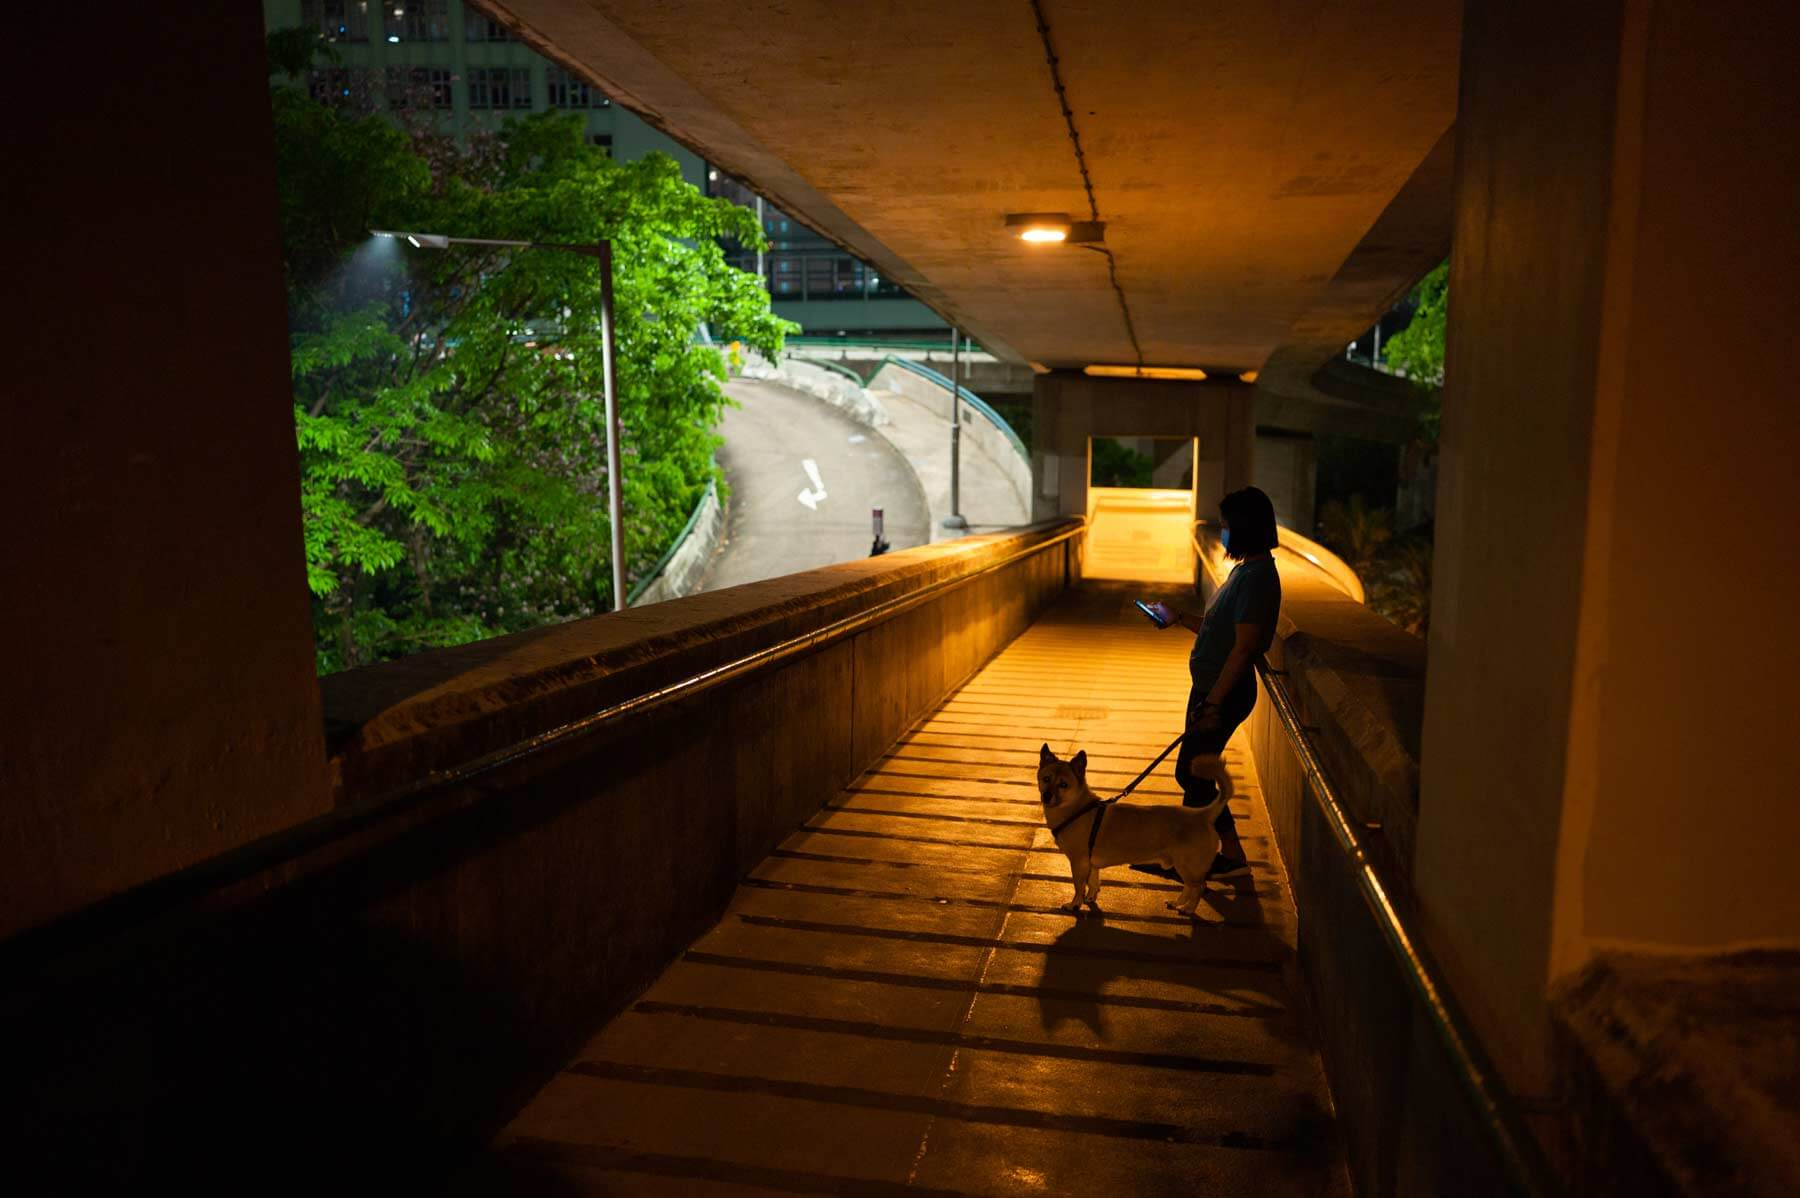 Voigtlander-35mm-f2-APO-lanthar-first-impression-review-lens-lenses-gear-test-new-vm-m-mount-sharpness-dog-silhouette-shadow-f2-wide-open-night-glenealy-hong-kong